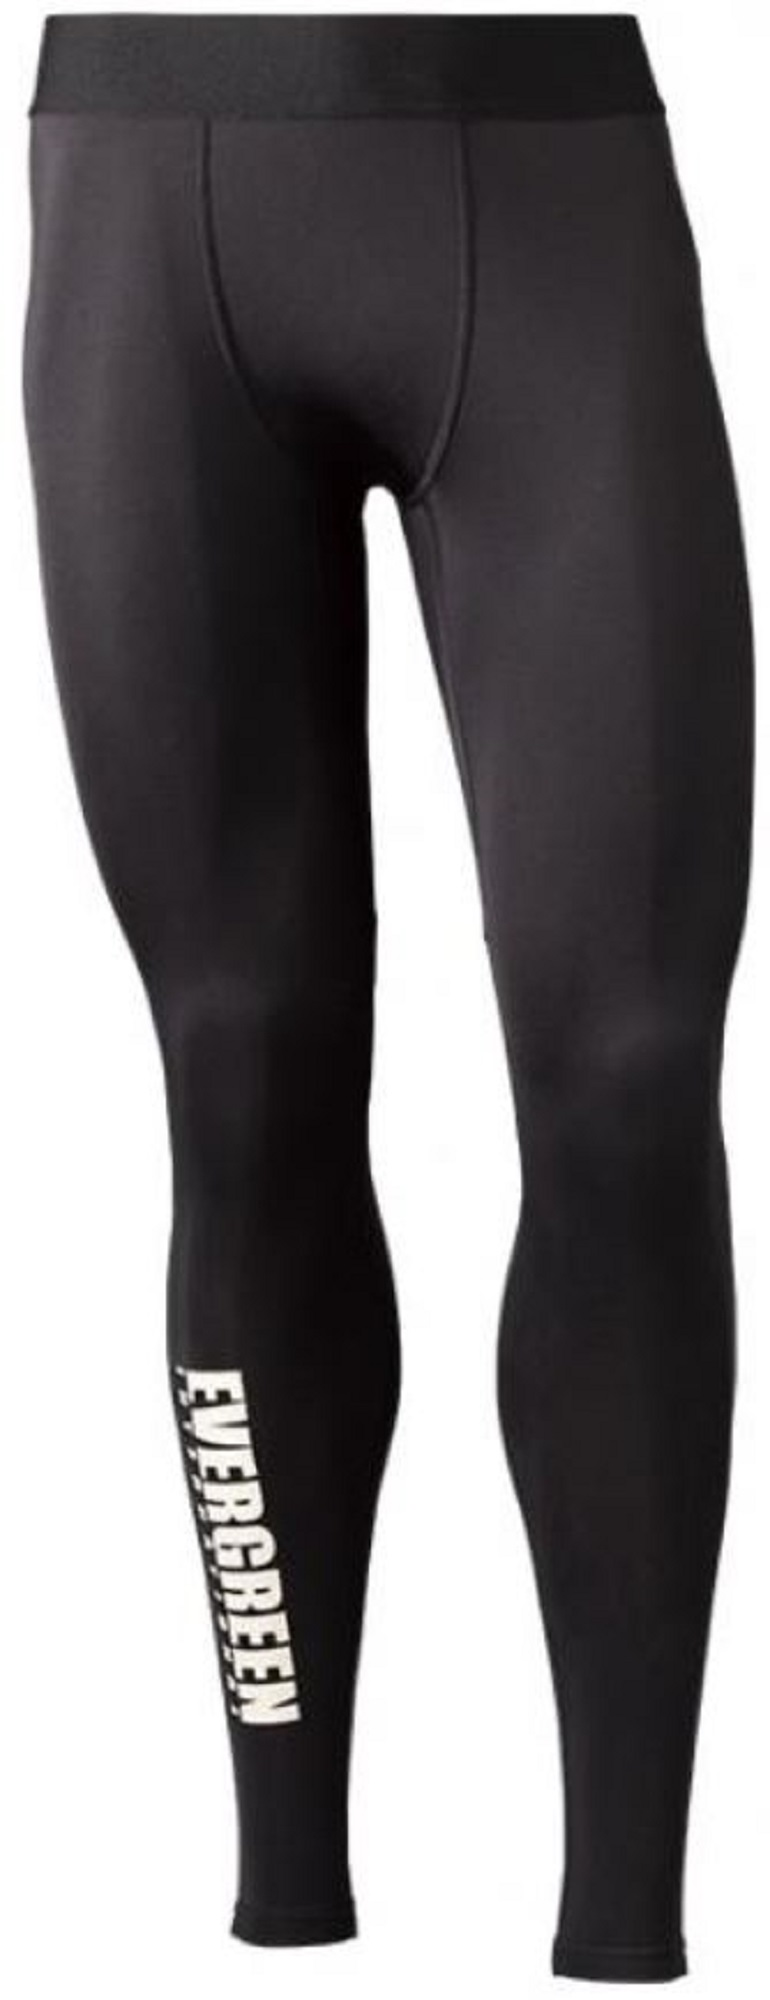 Evergreen Tights Dry Field Size XXL Black 87-93 cm 34 -37 Inches (0846)